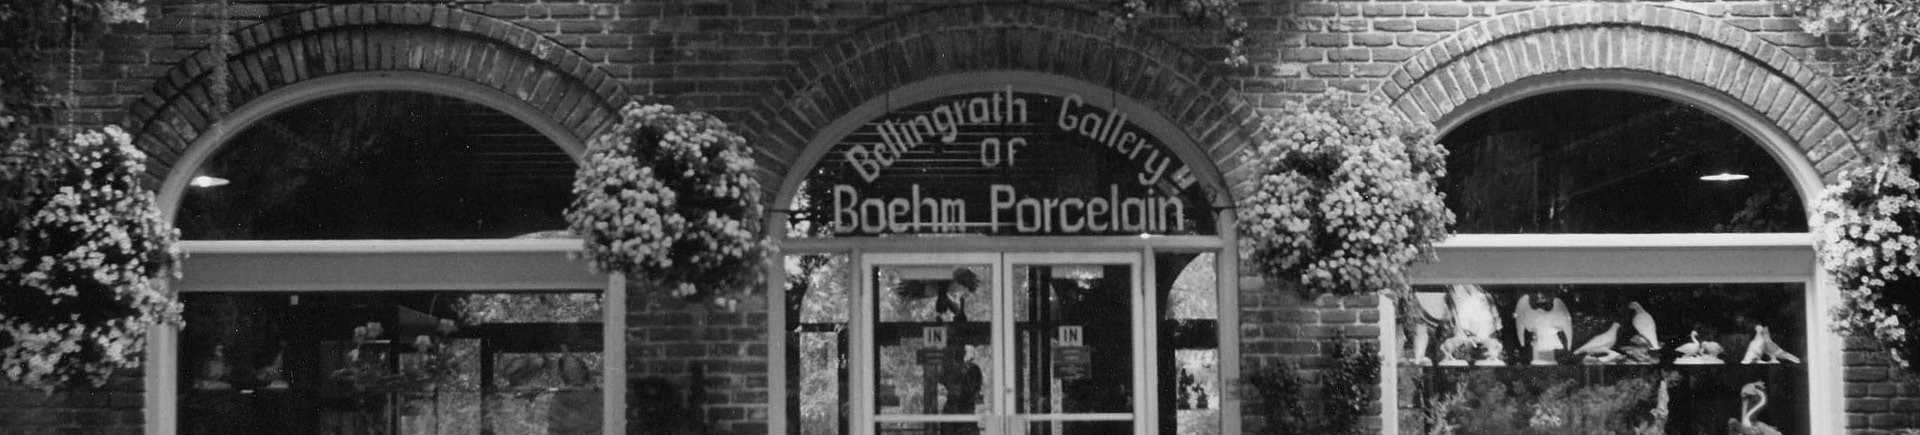 Delchamps Gallery Of Boehm Porcelain Is Dedicated